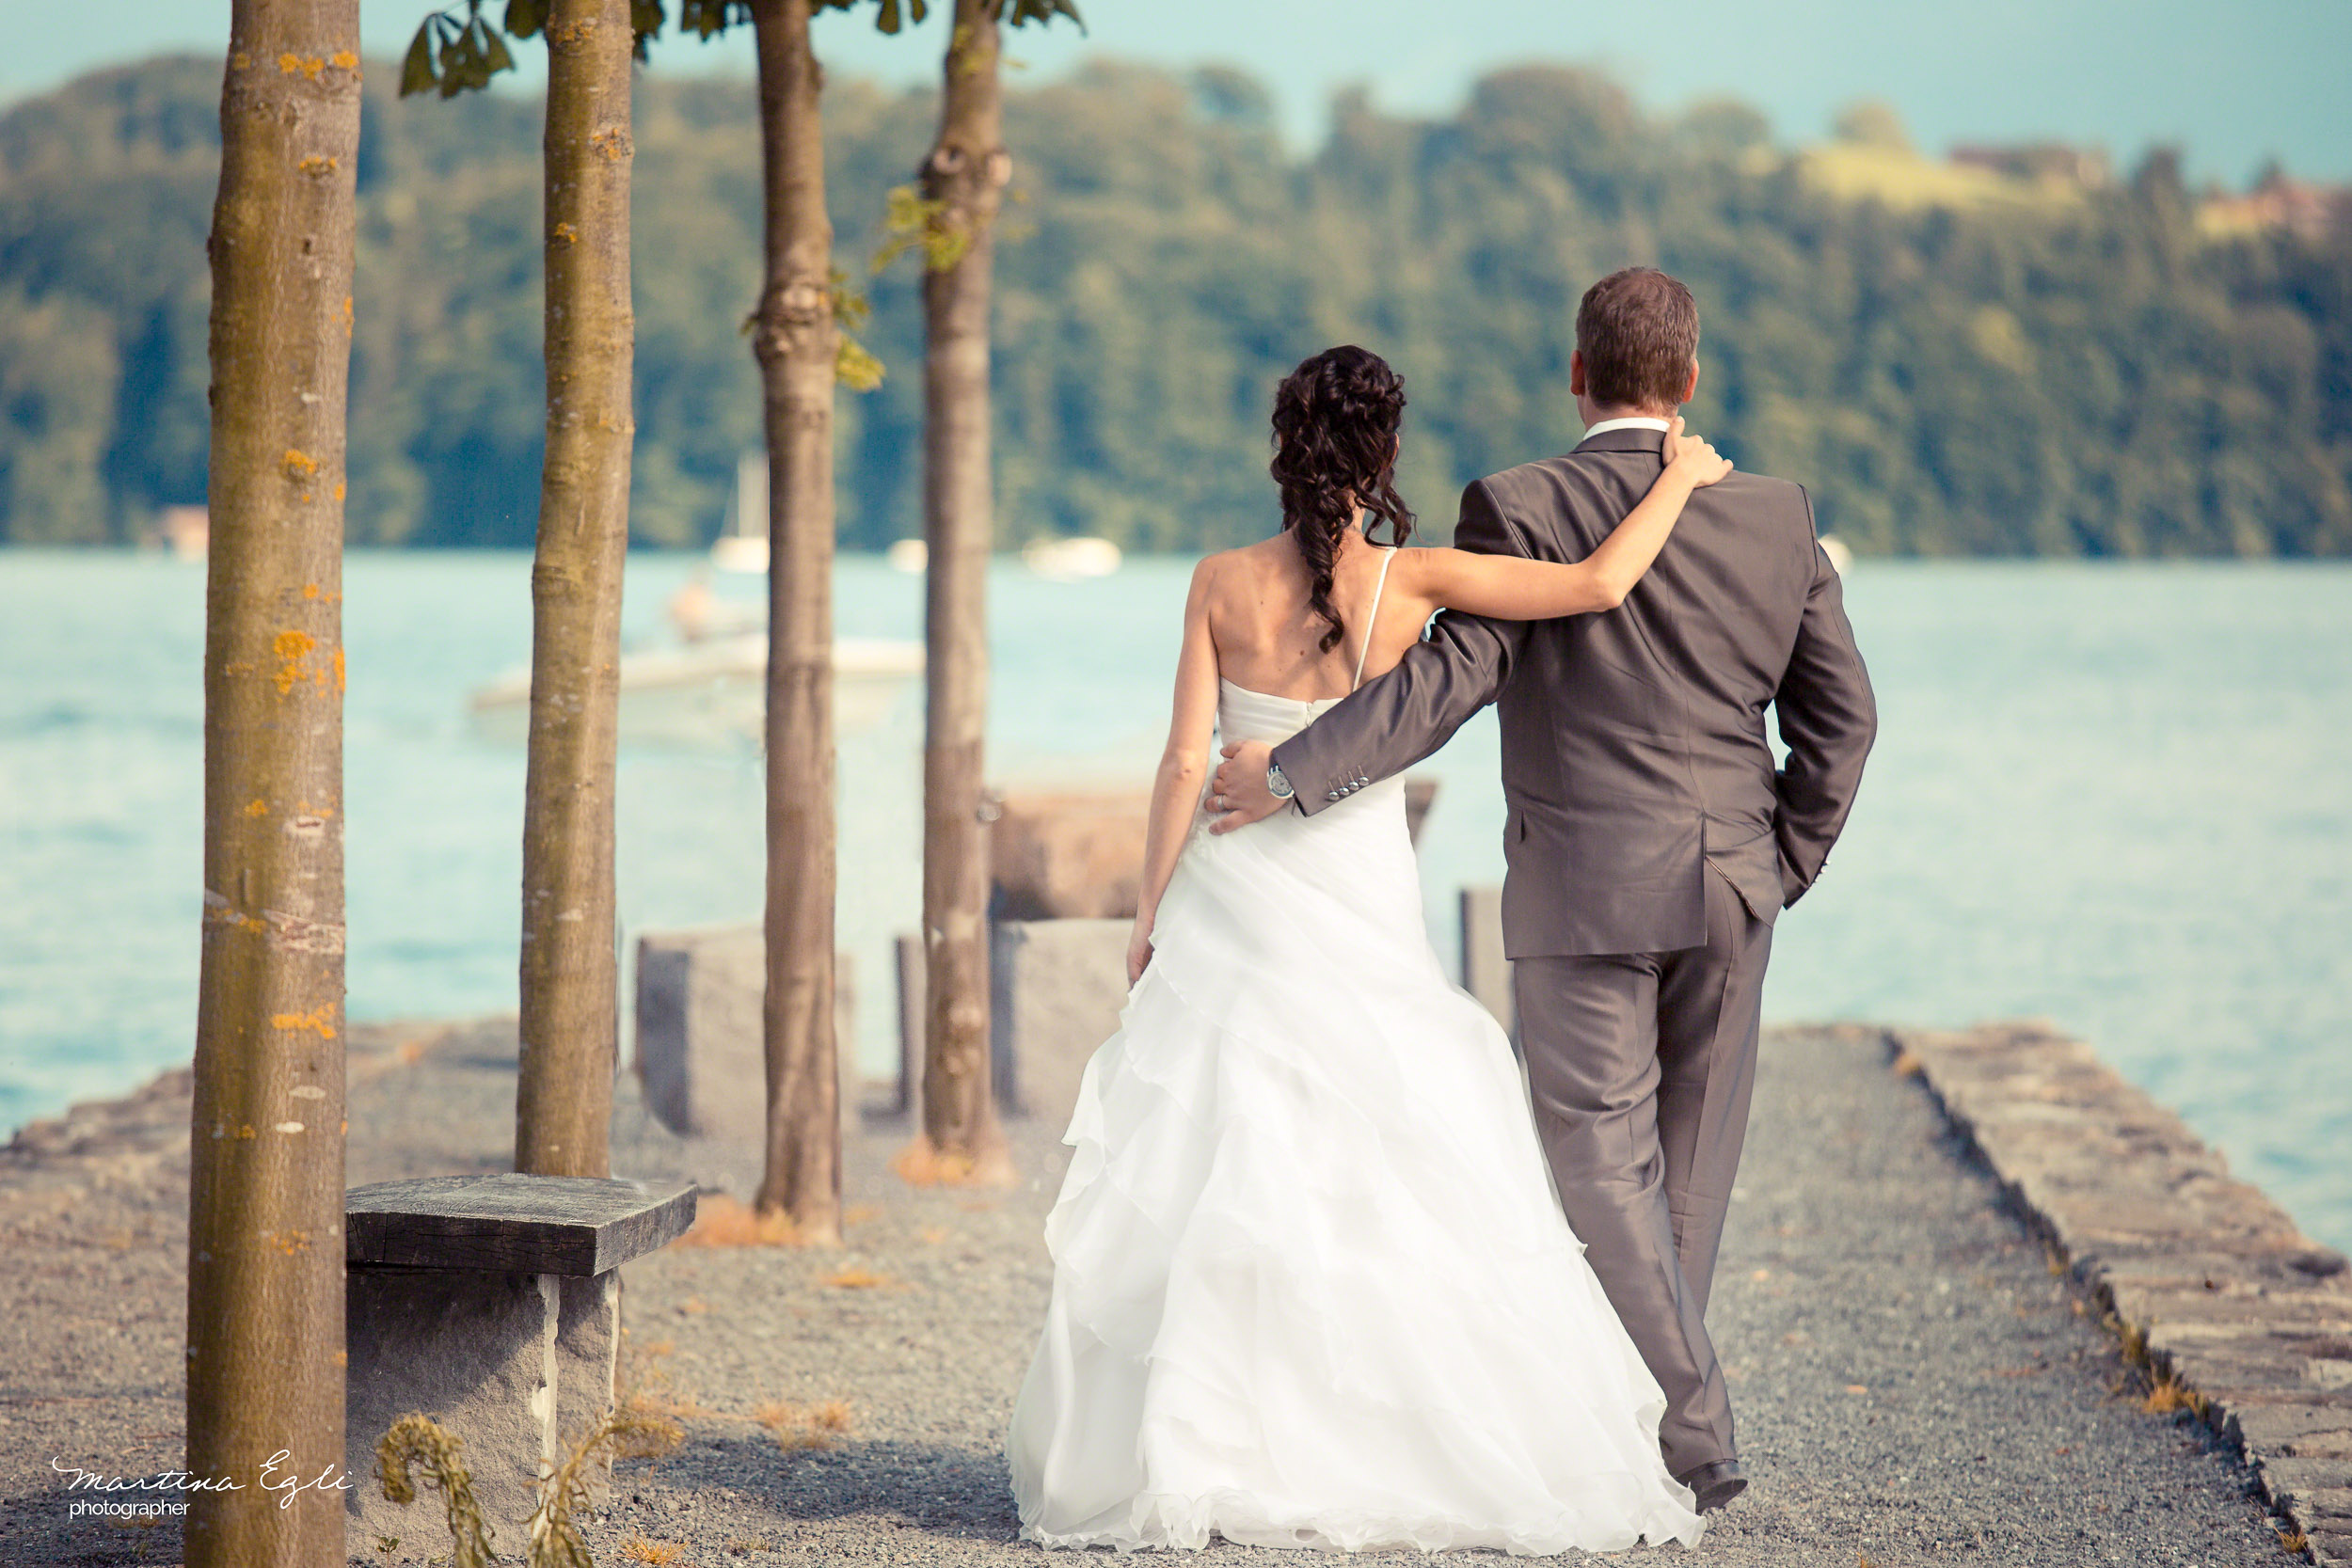 A Bride and Groom walk arm in arm